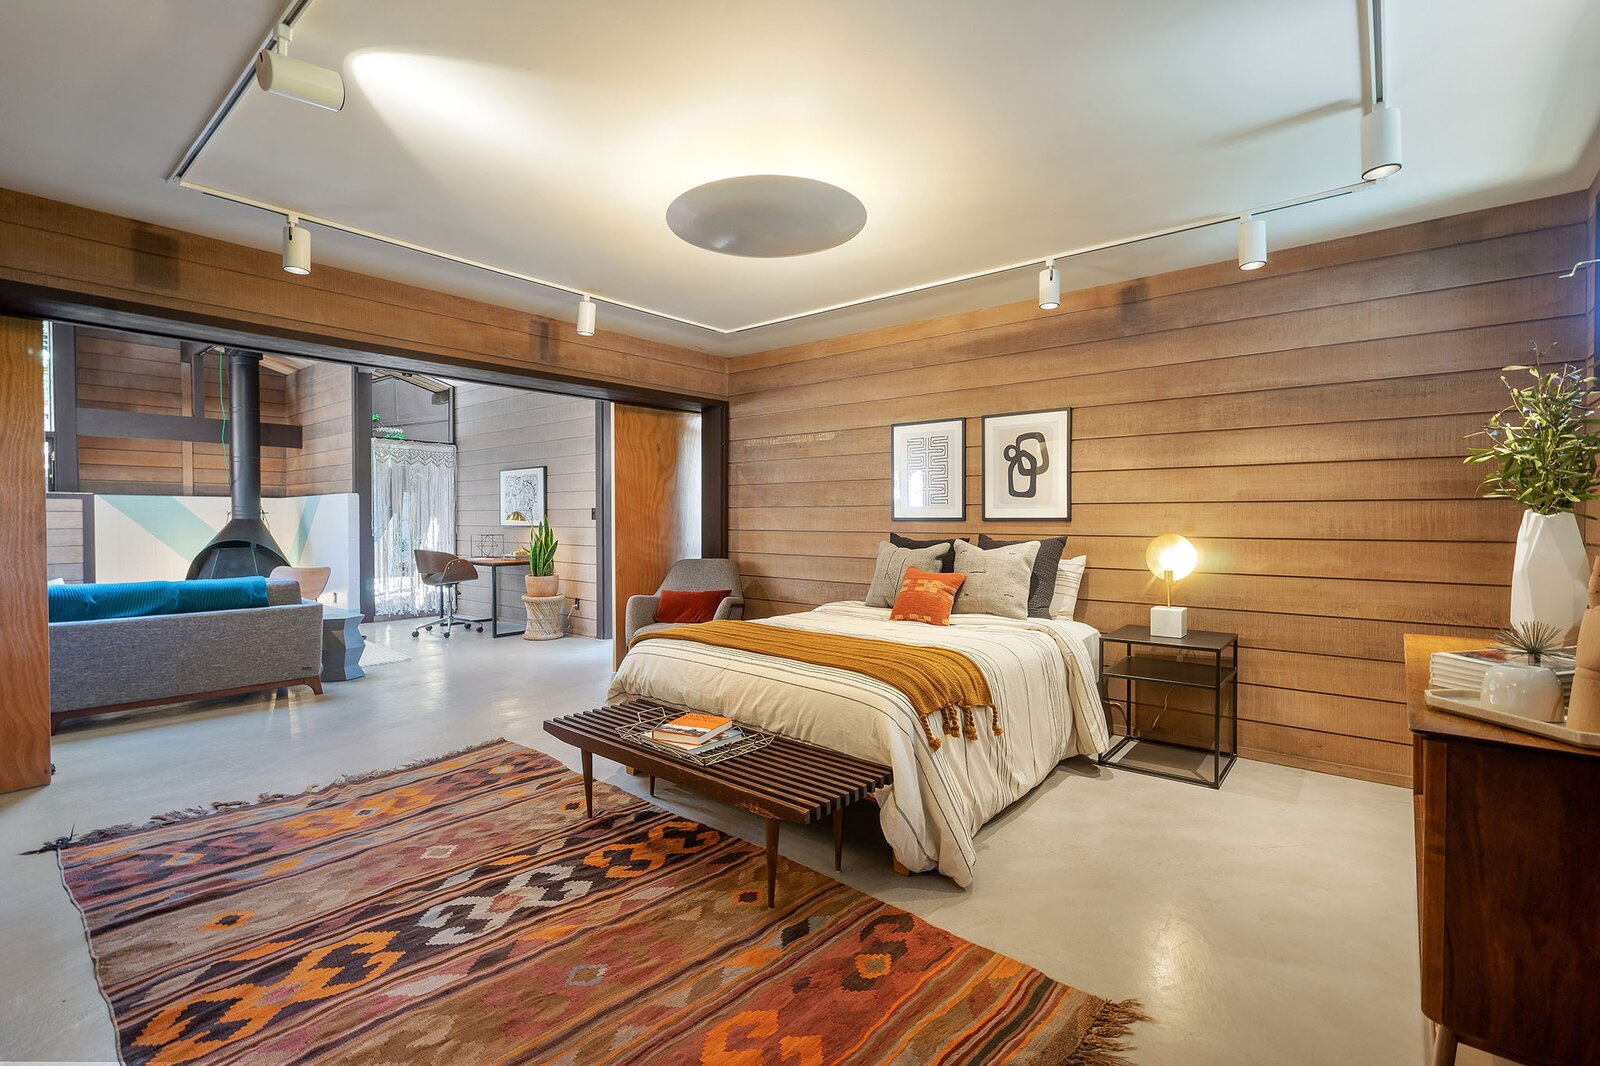 Bedroom in the Hargrove Residence by Roger Lee